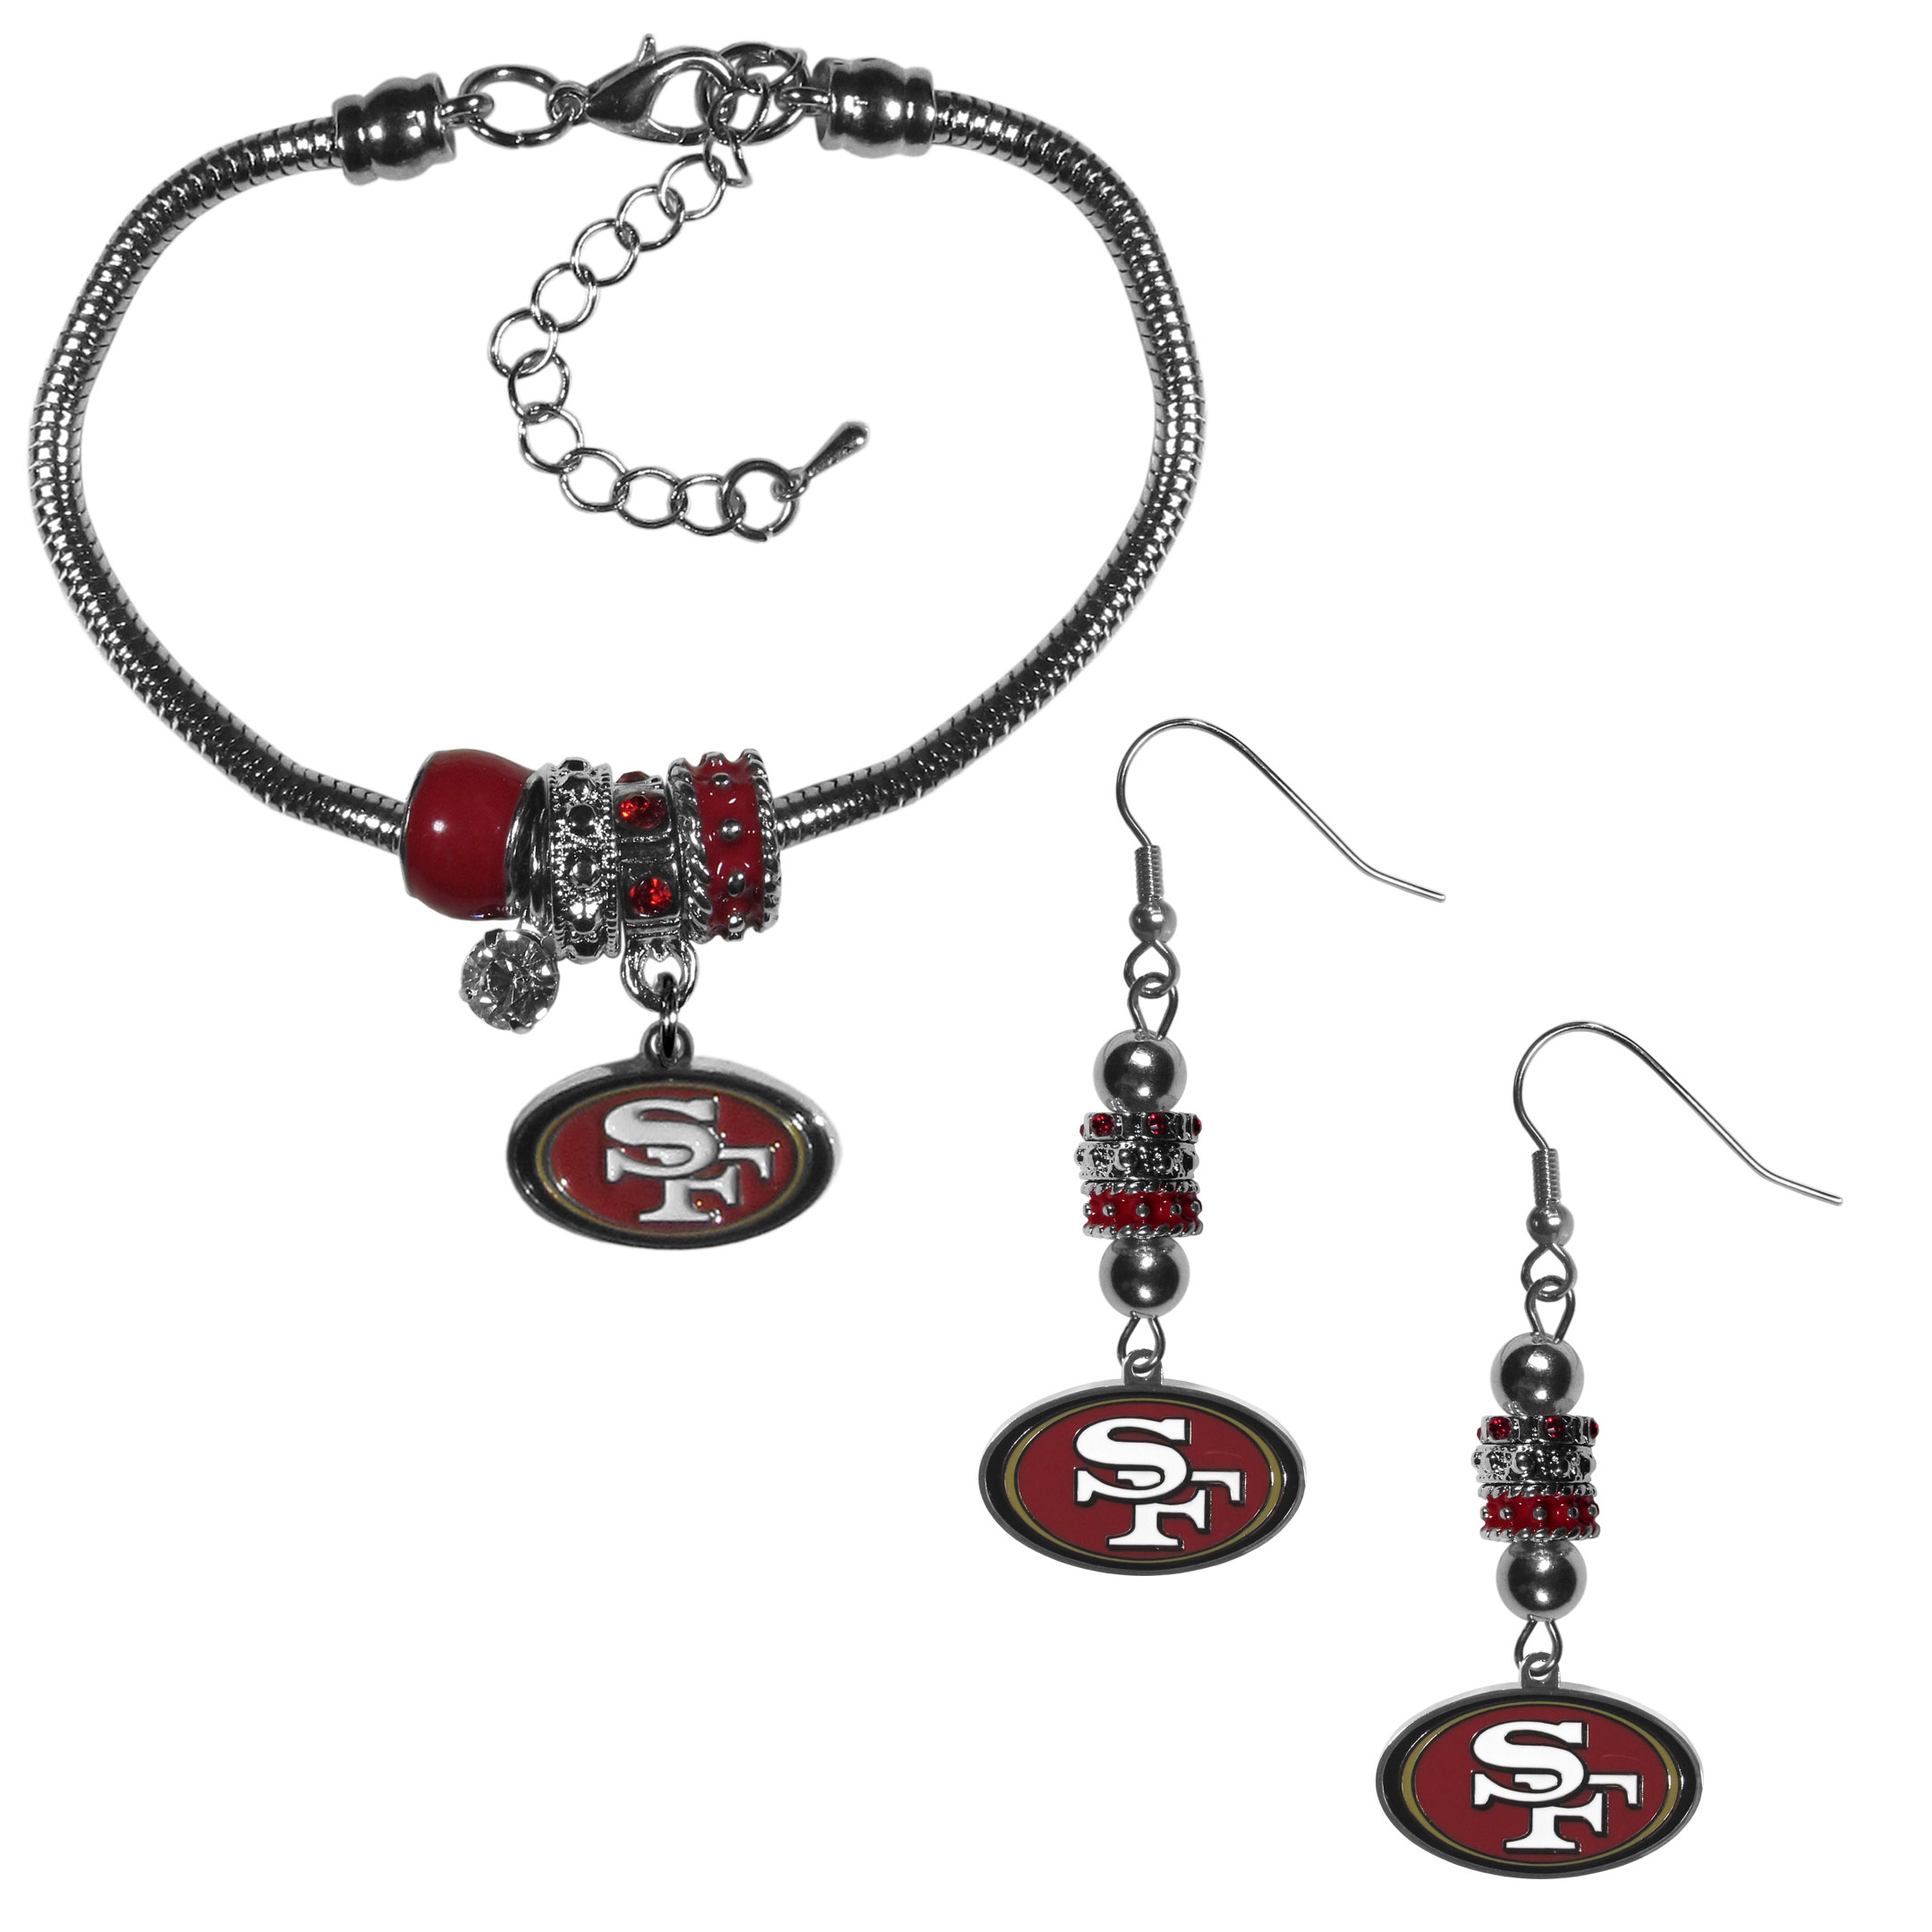 San Francisco 49ers Euro Bead Earrings and Bracelet Set - We combine the popular Euro bead style with your love of the San Francisco 49ers with this beautiful jewelry set that includes earrings and a matching bracelet. The stylish earrings feature hypoallergenic, nickel free fishhook posts and 3 team colored Euro beads and a metal team charm. The matching snake chain bracelet is 7.5 inches long with a 2 inch extender and 4 Euro beads with a rhinestone charm and team charm.